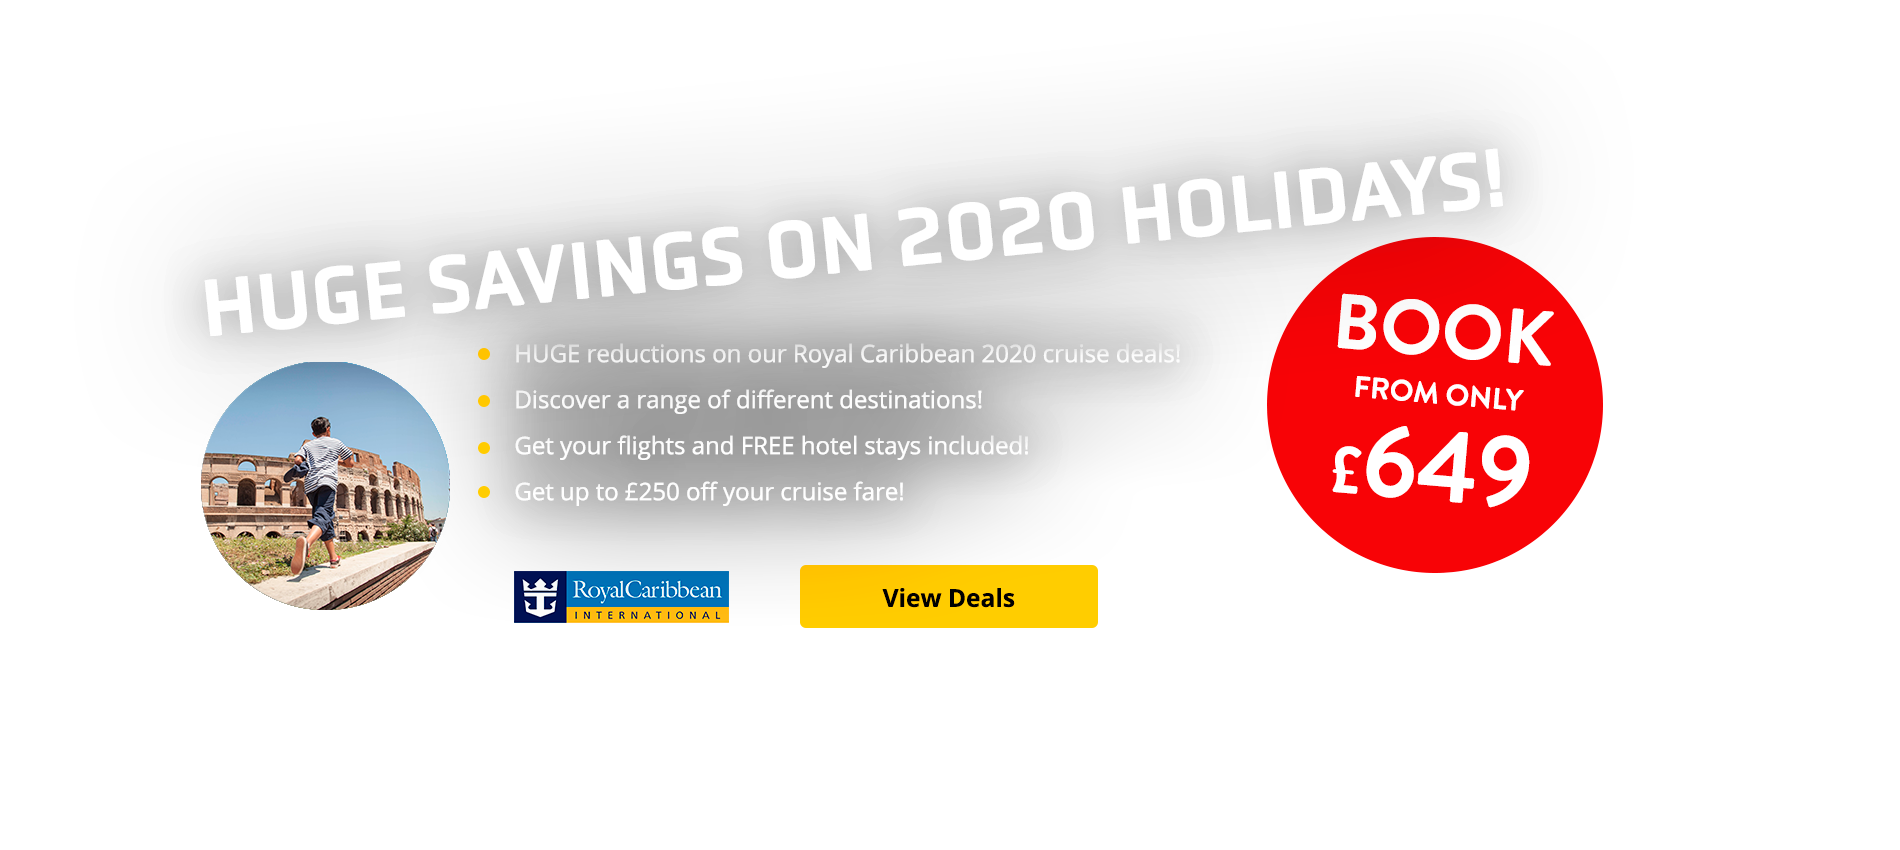 HUGE reductions on our Royal Caribbean 2020 cruise deals! Discover a range of different destinations! Get your flights and FREE hotel stays included! Get up to £250 off your cruise fare!